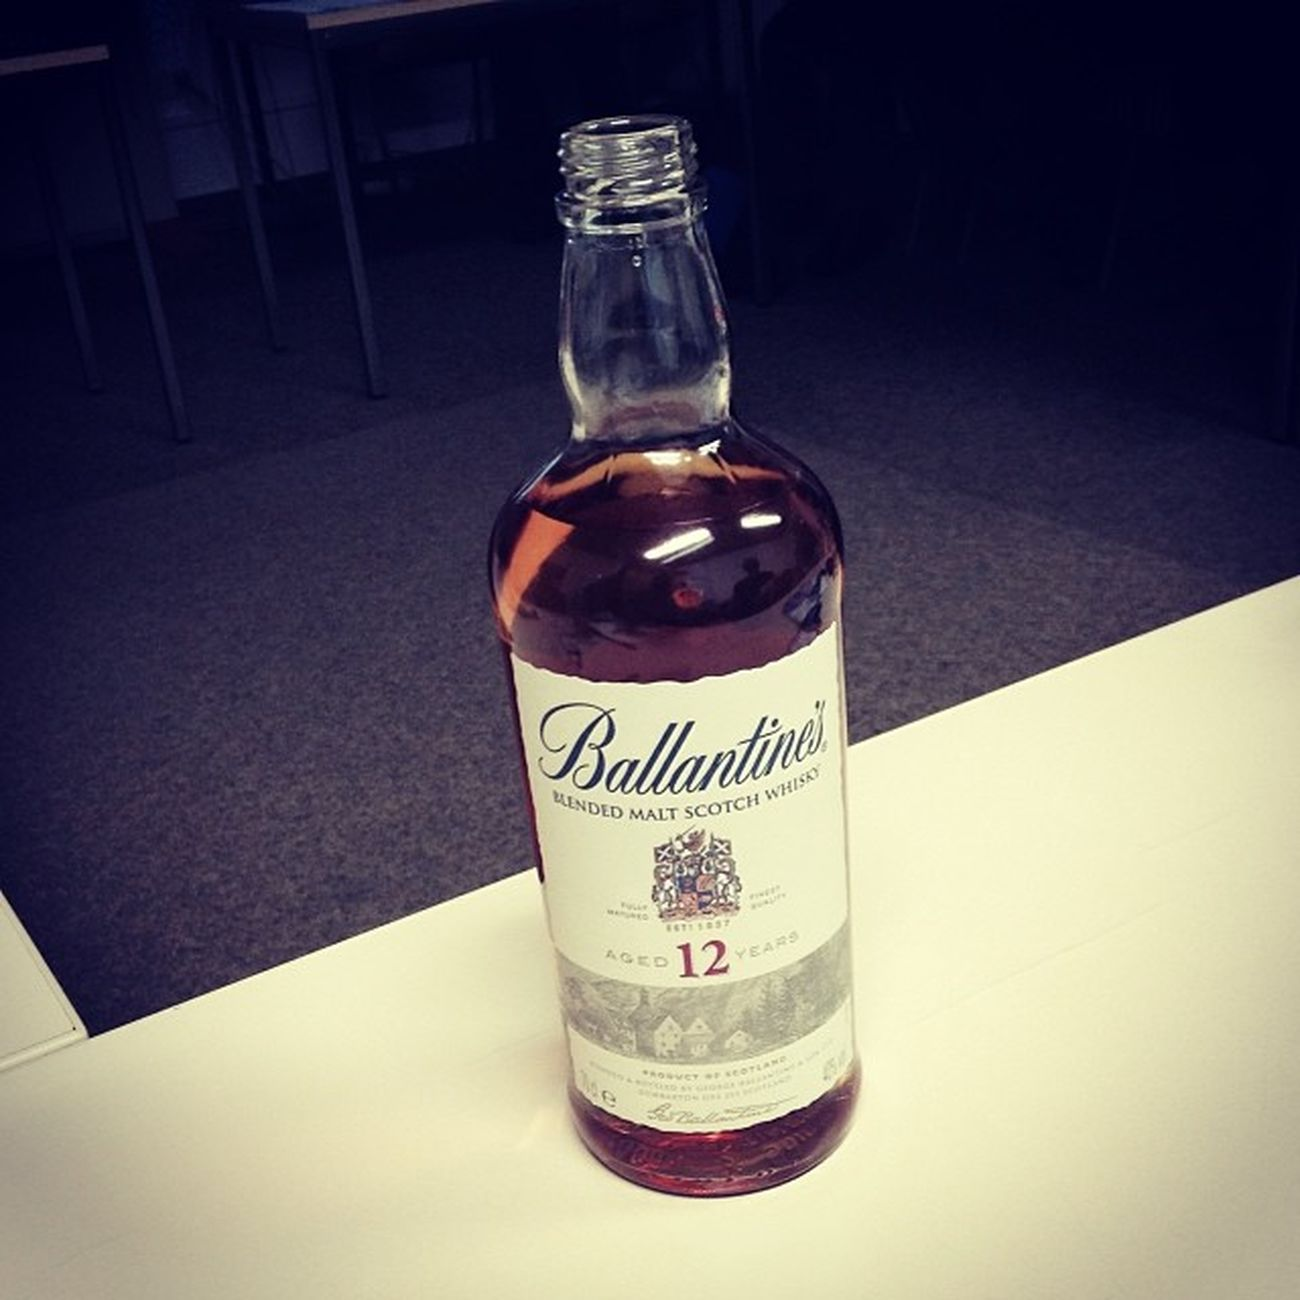 4. Ballantines 12 years... #whiskyVHS Whiskyvhs